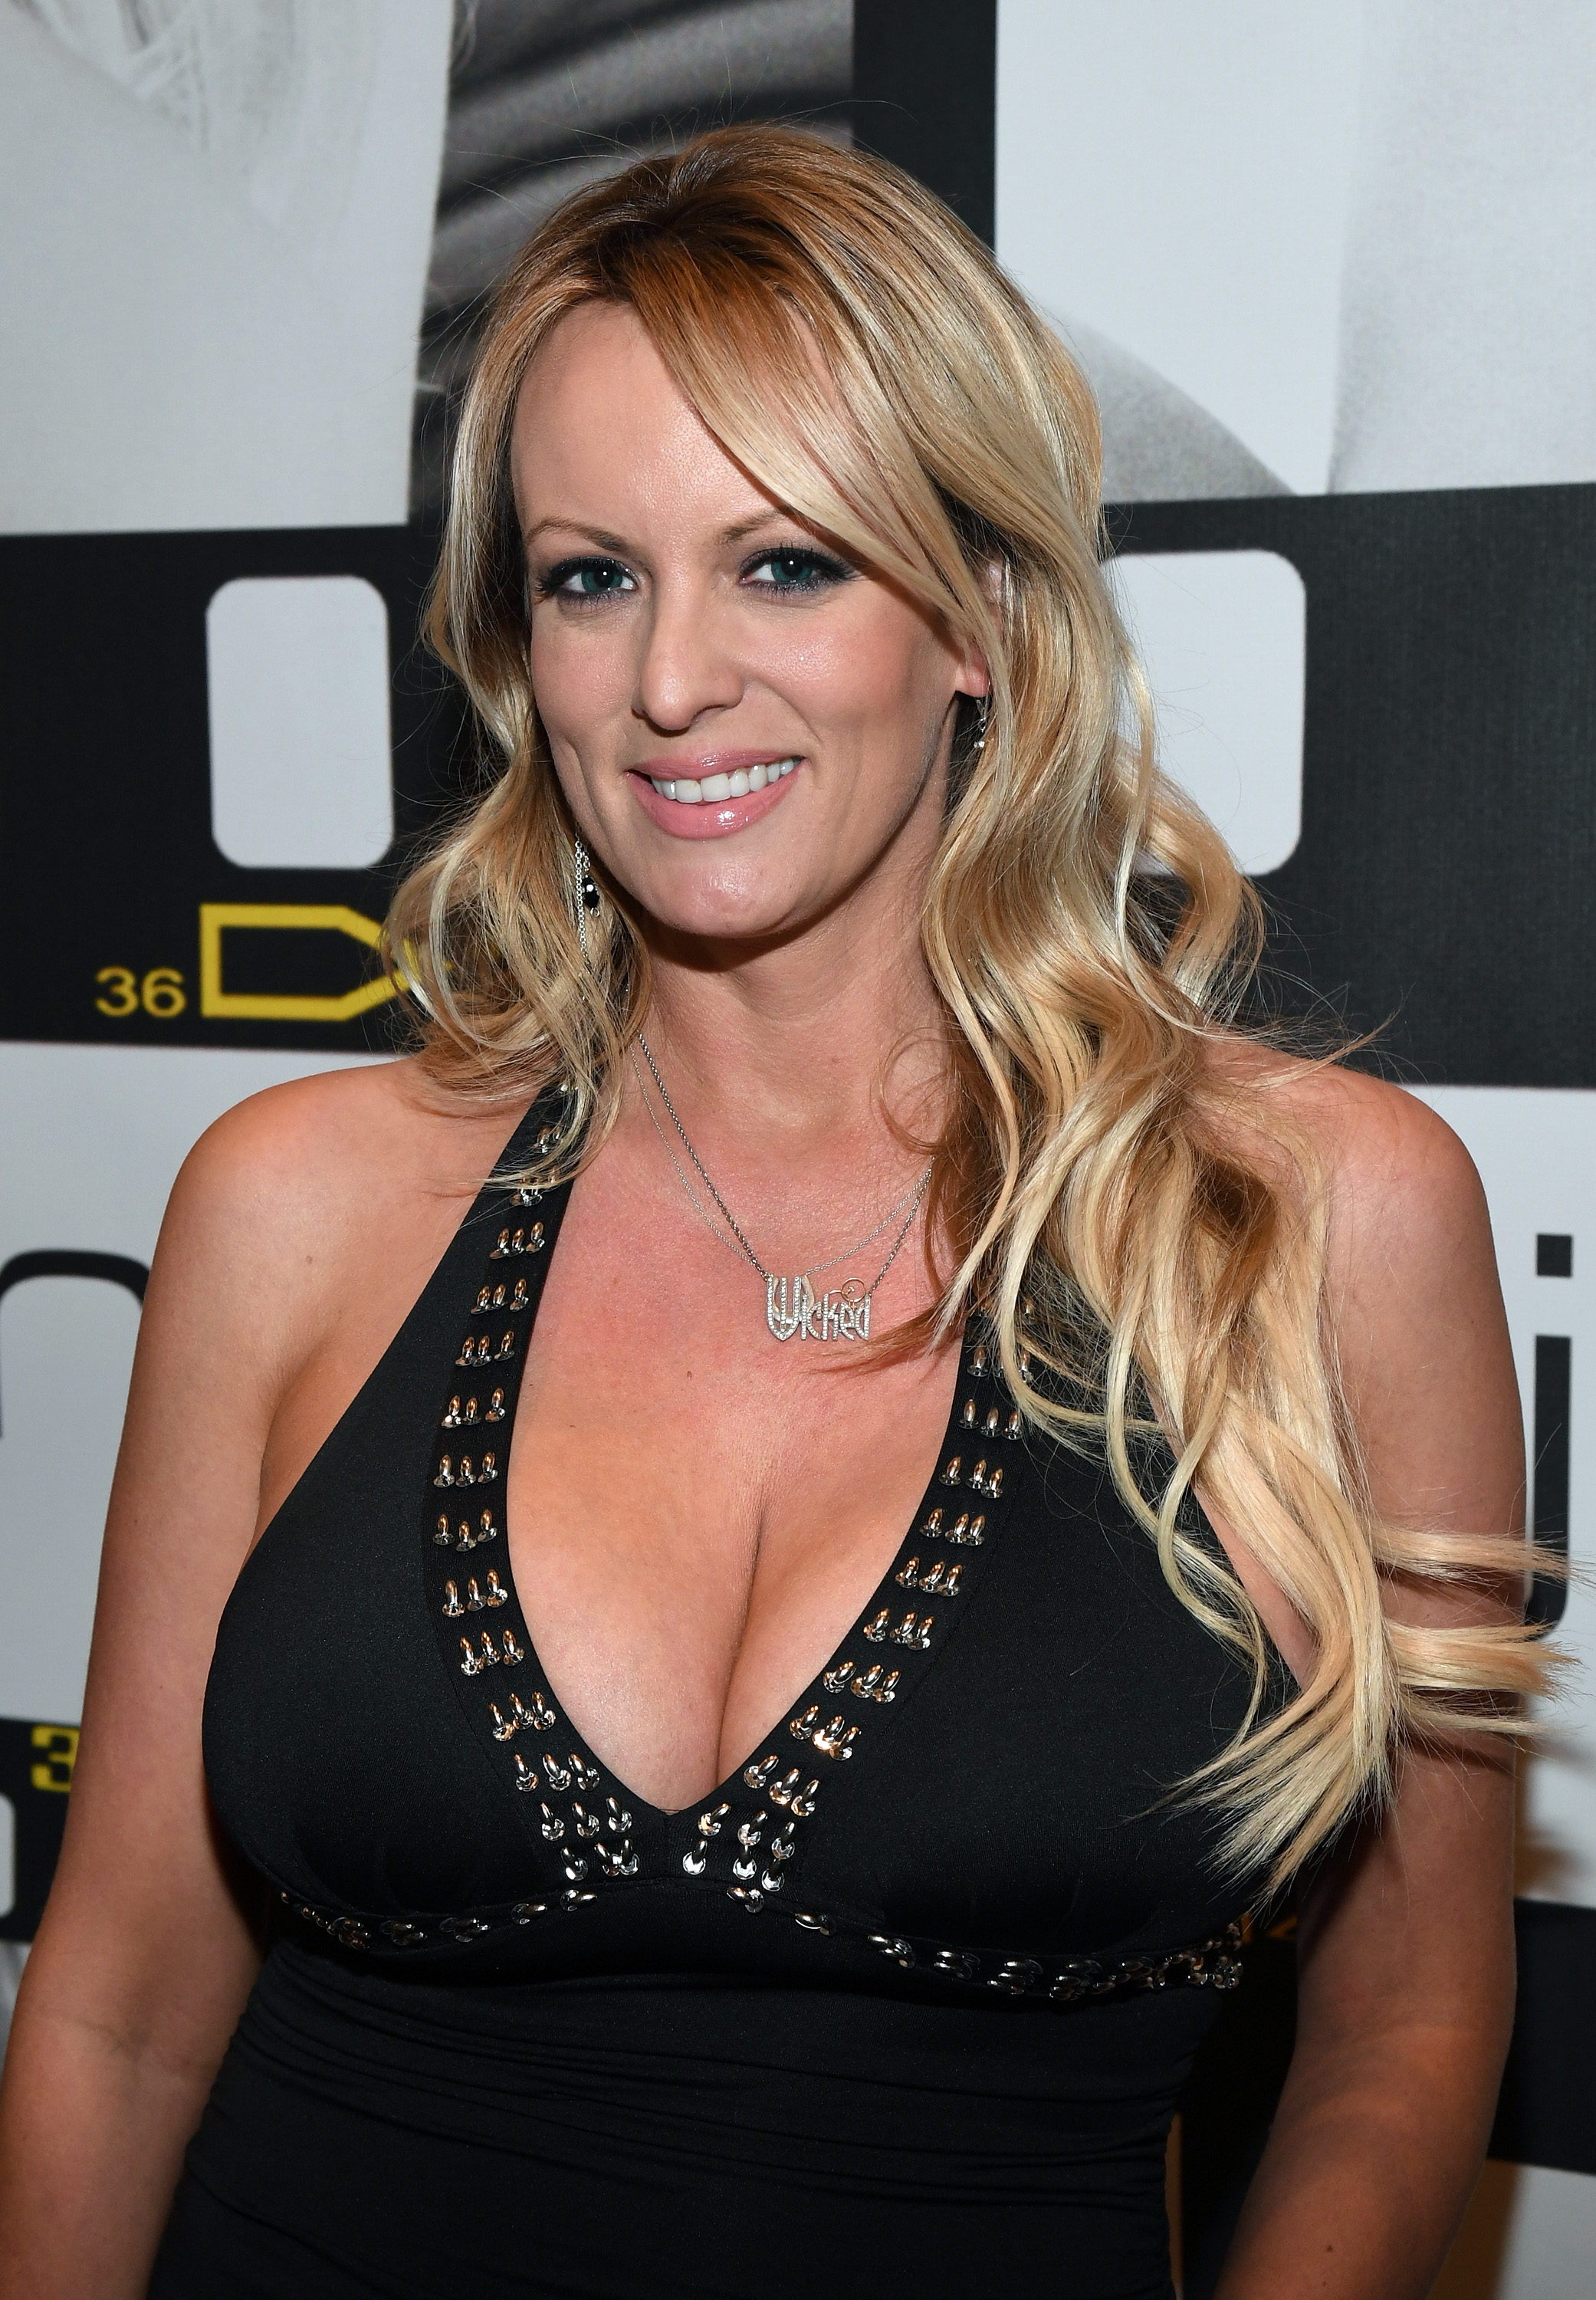 American Century Celebrity Golf Lake Tahoe 2018 besides Index also Fishing as well Water Sports furthermore 1066747 Porn Actress Stormy Daniels Says Shes Now Free Tell Story Trump. on lake tahoe golf tournament